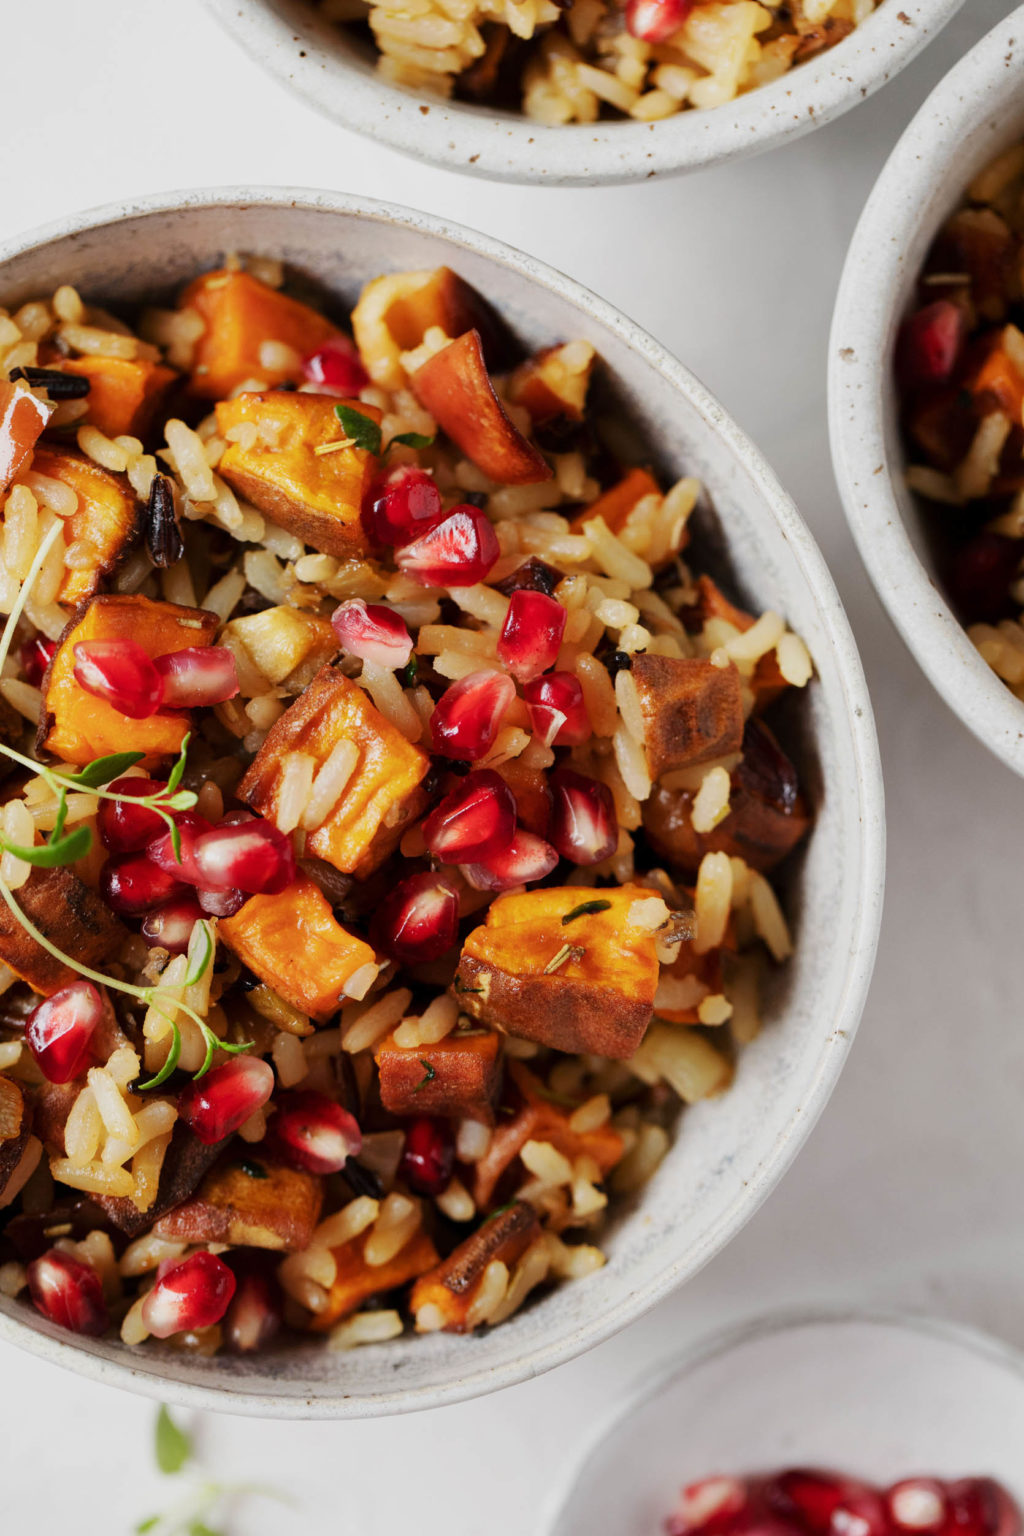 A close up, overhead image of a colorful bowl of wild rice, pomegranate seeds, roasted sweet potatoes, and apples.